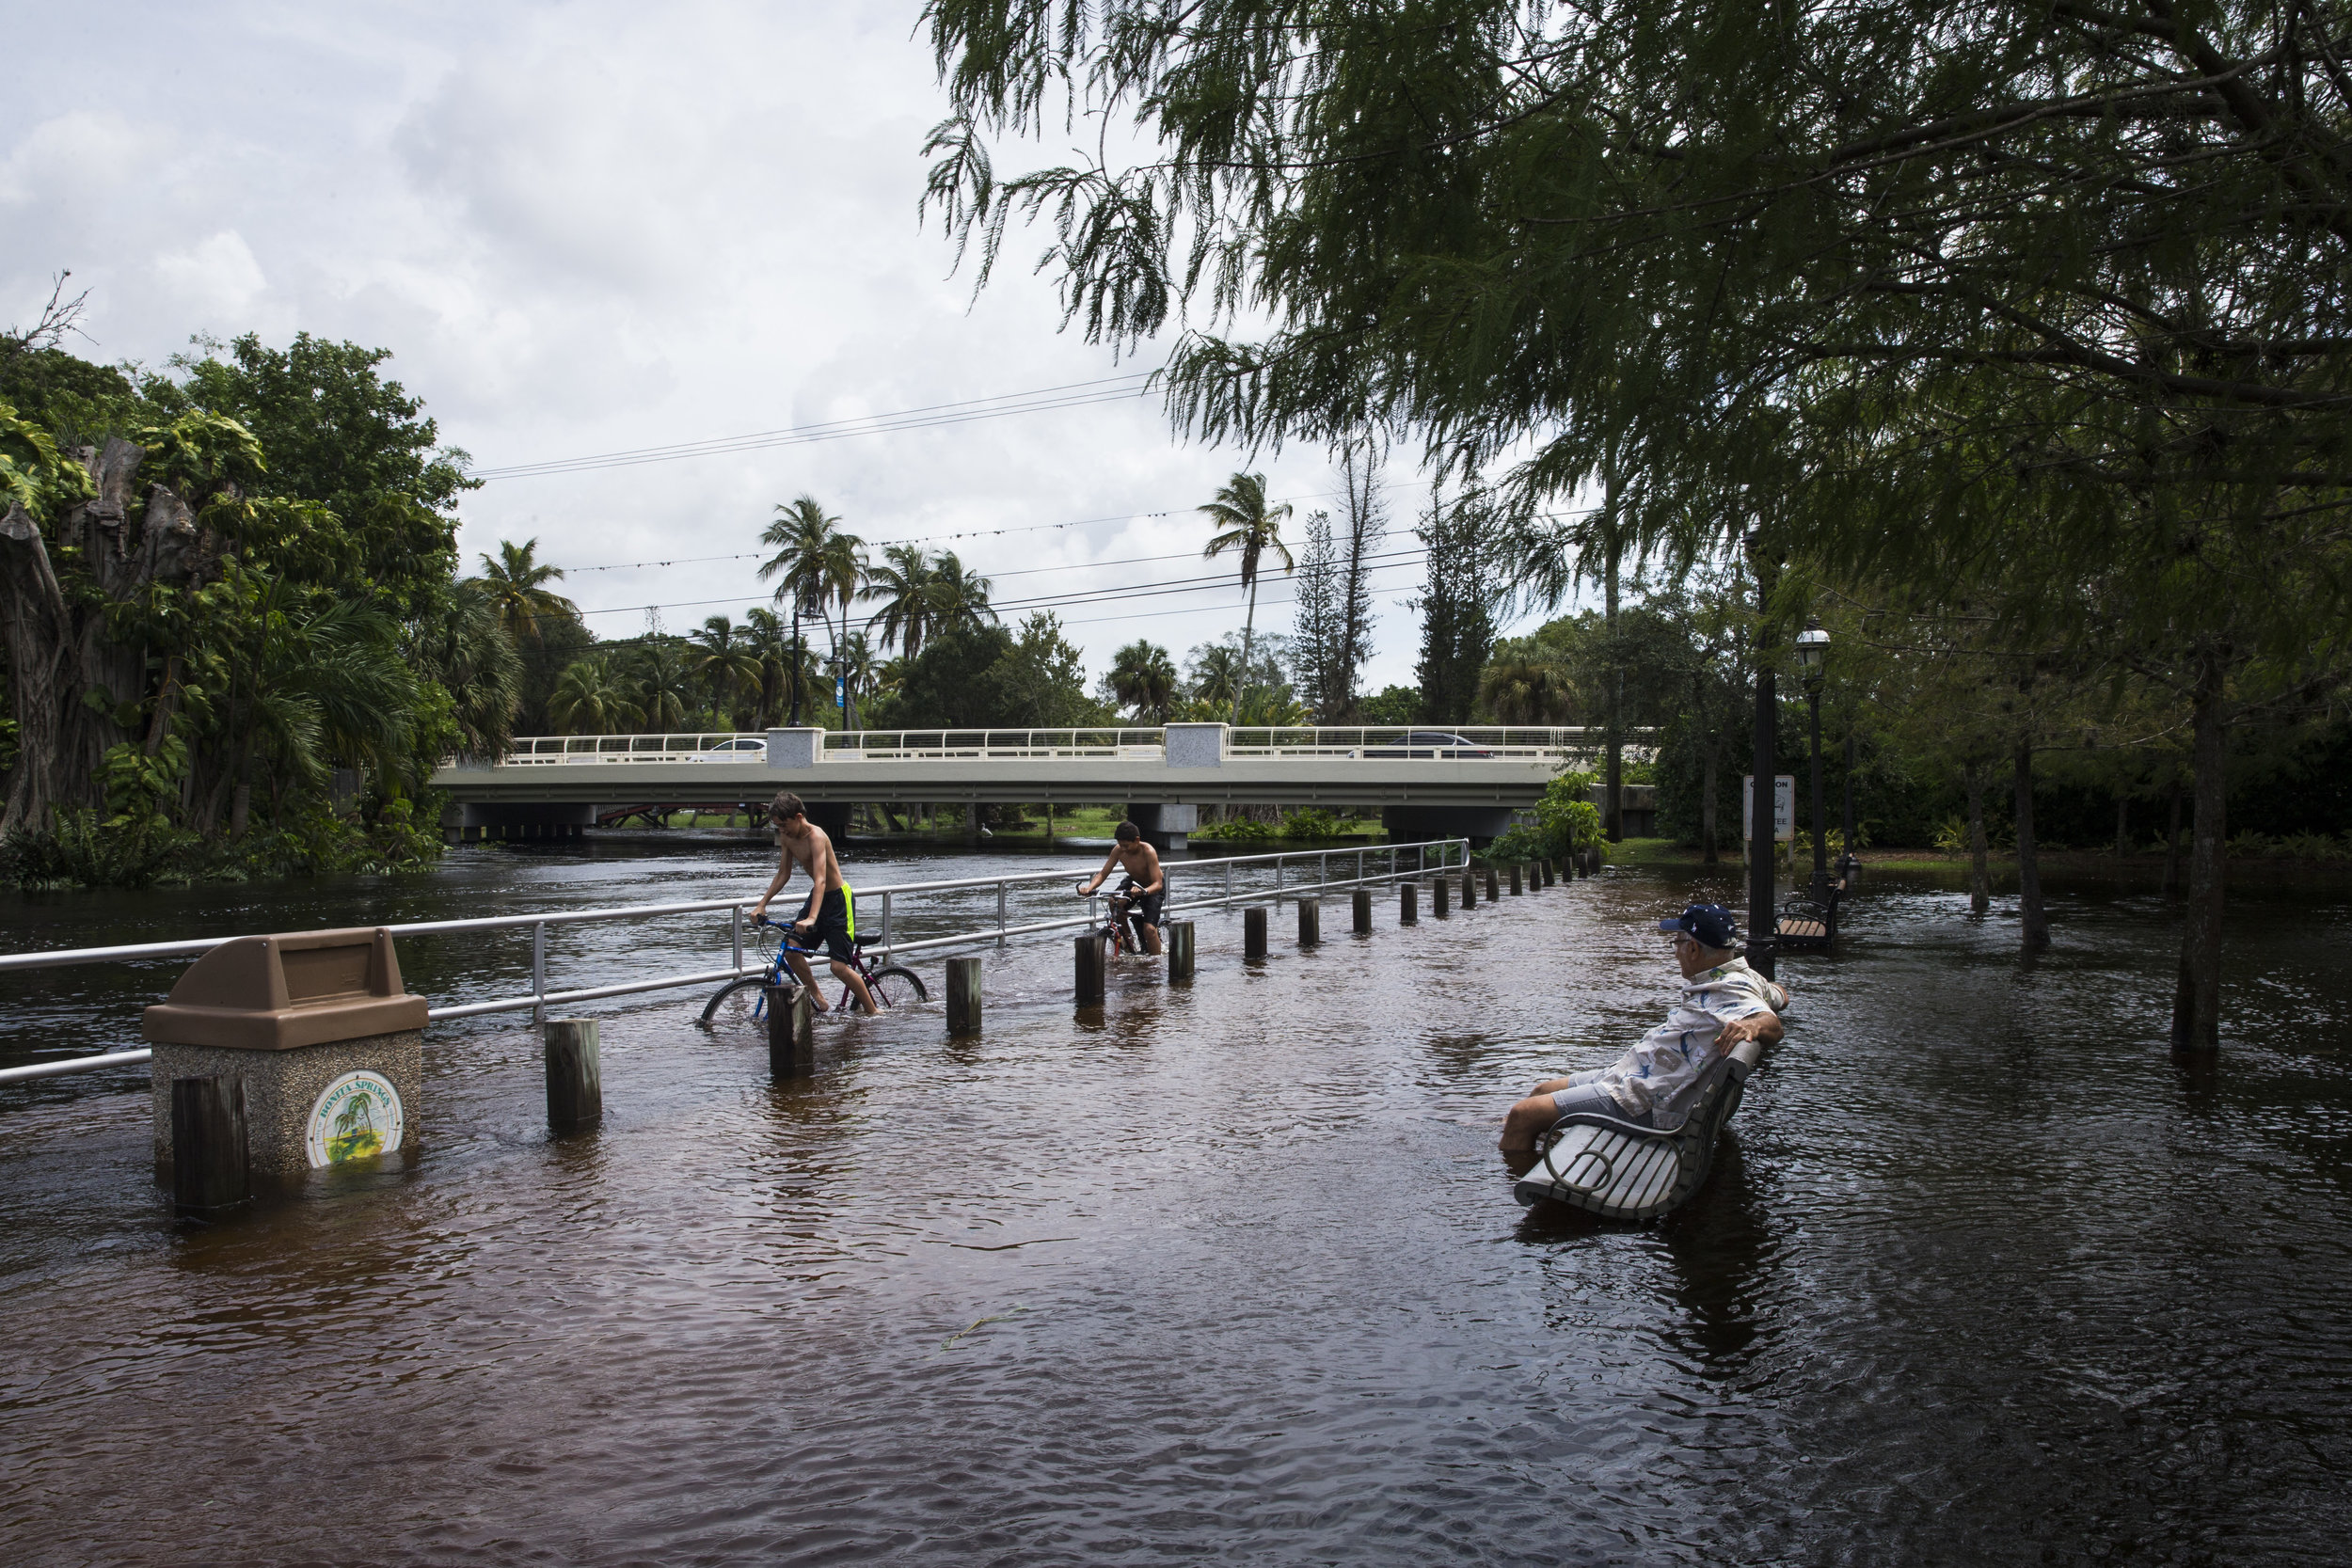 Jack Cannon, 14, from left, and Salvador Figueroa, 13, both of Bonita Springs, ride their bikes through the flooded walkway as Jerry Rabin enjoys the scene from a bench in Riverside Park in Bonita Springs on Monday, August 28, 2017.